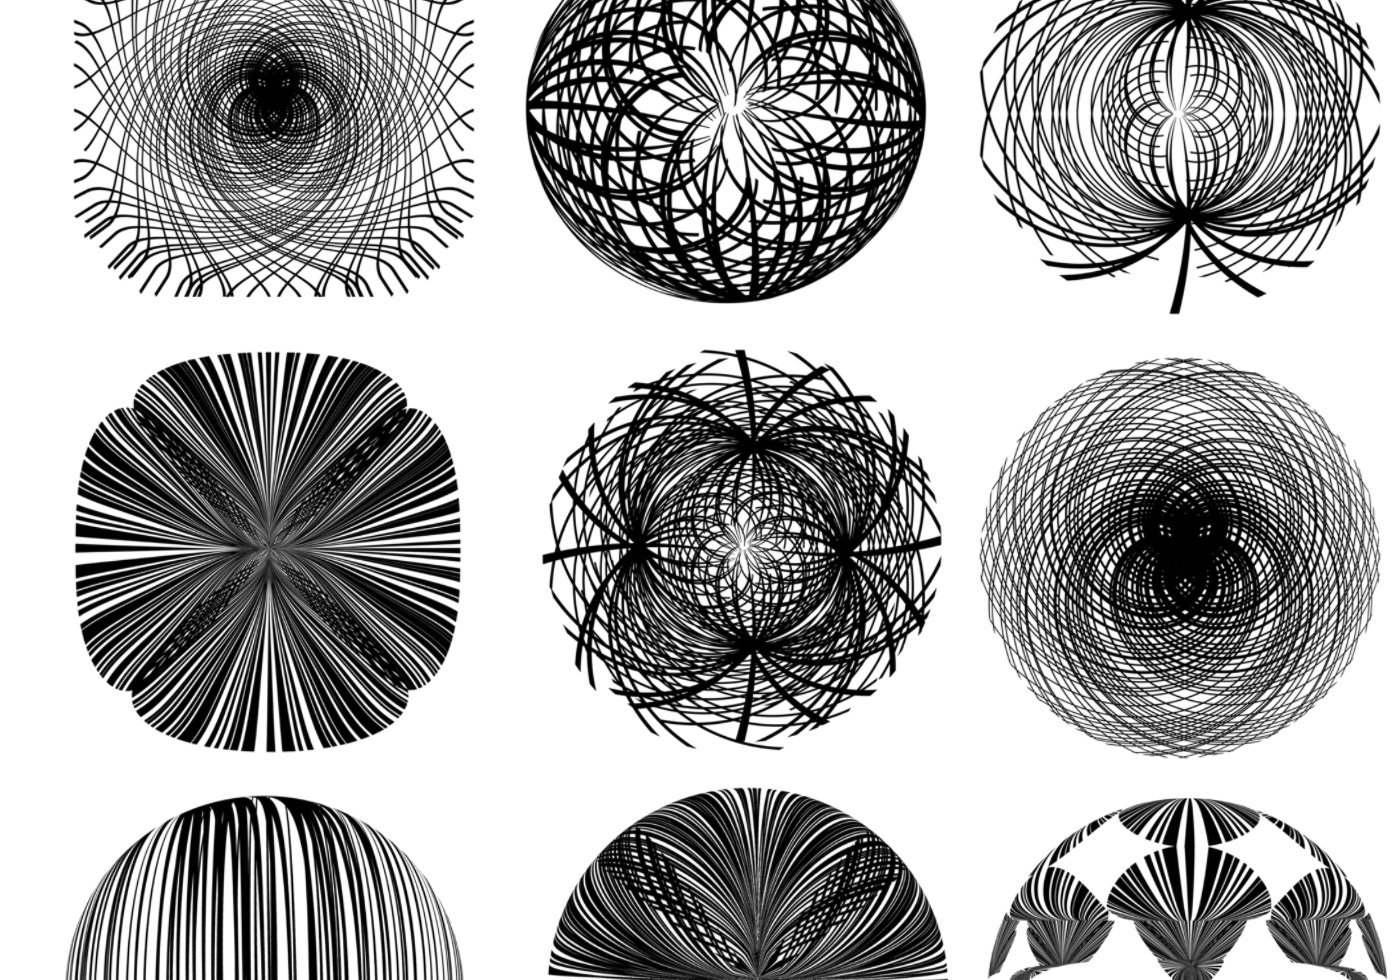 Line Art Brush By Jimro : Abstract line brushes free photoshop at brusheezy